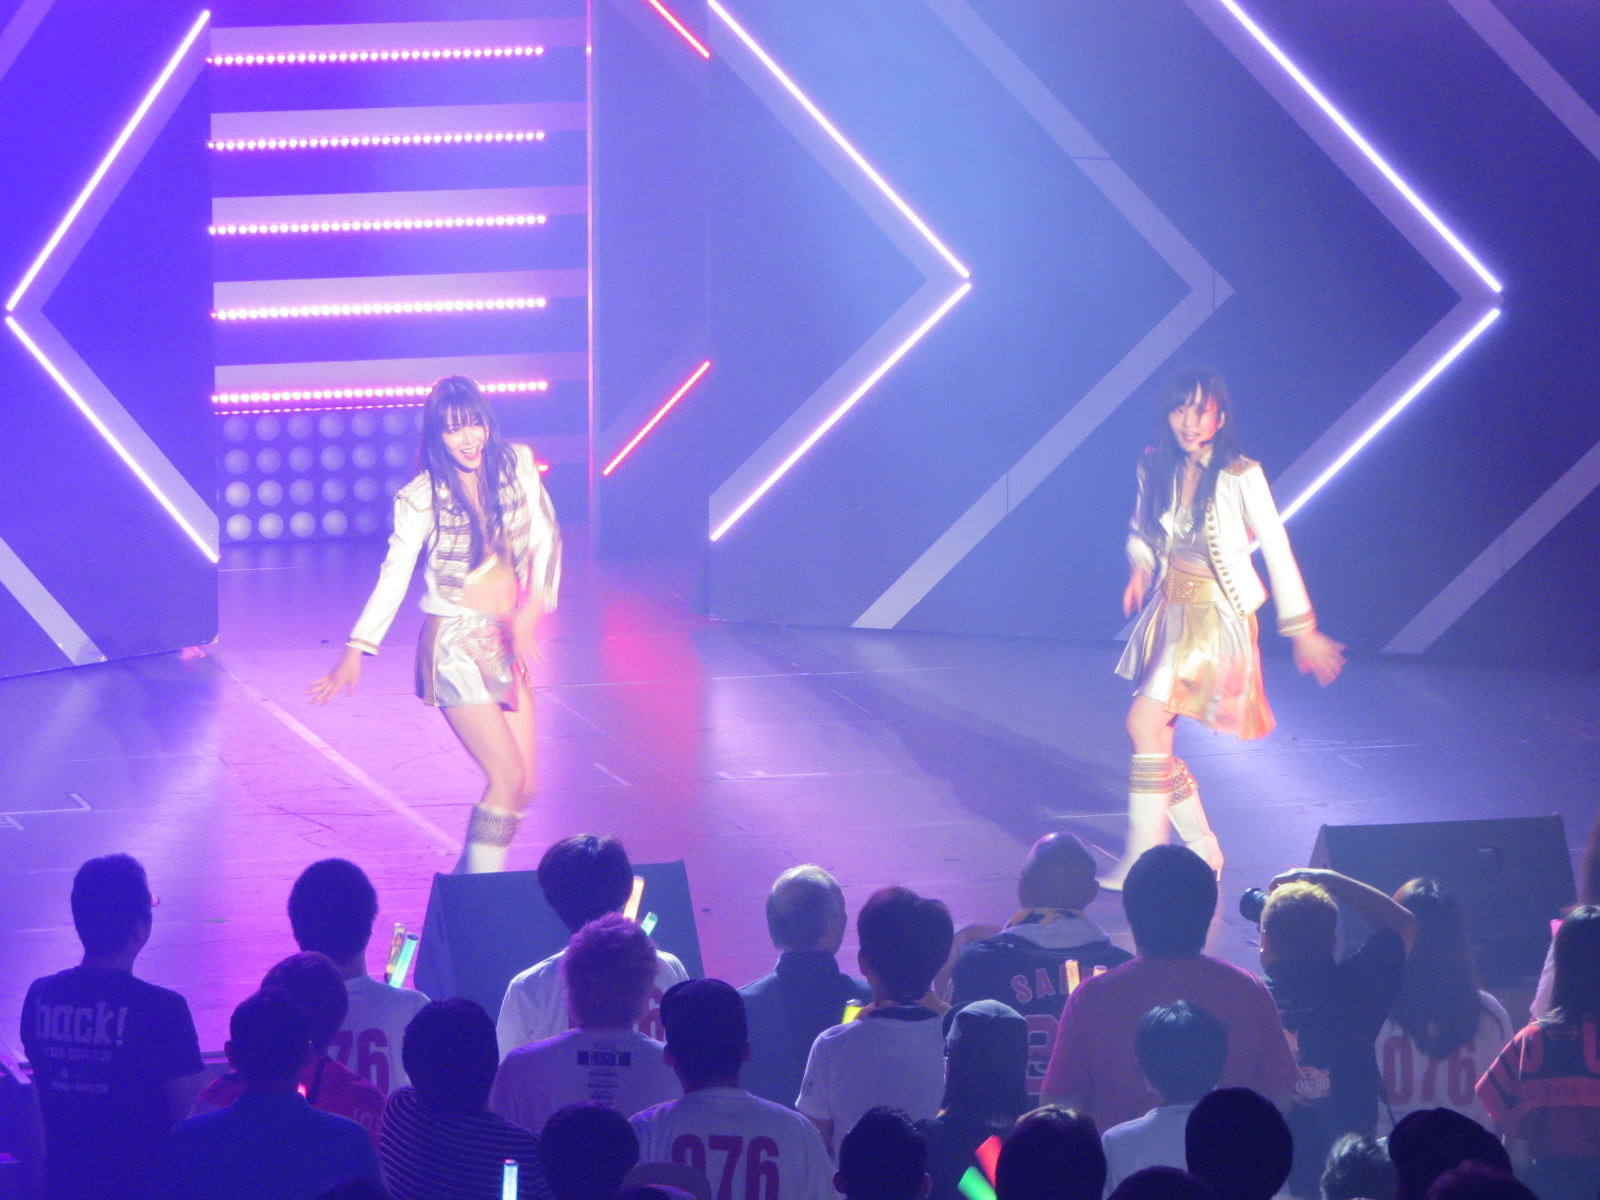 NMB48 LIVE TOUR 2018 in Summer・石川公演の画像-060